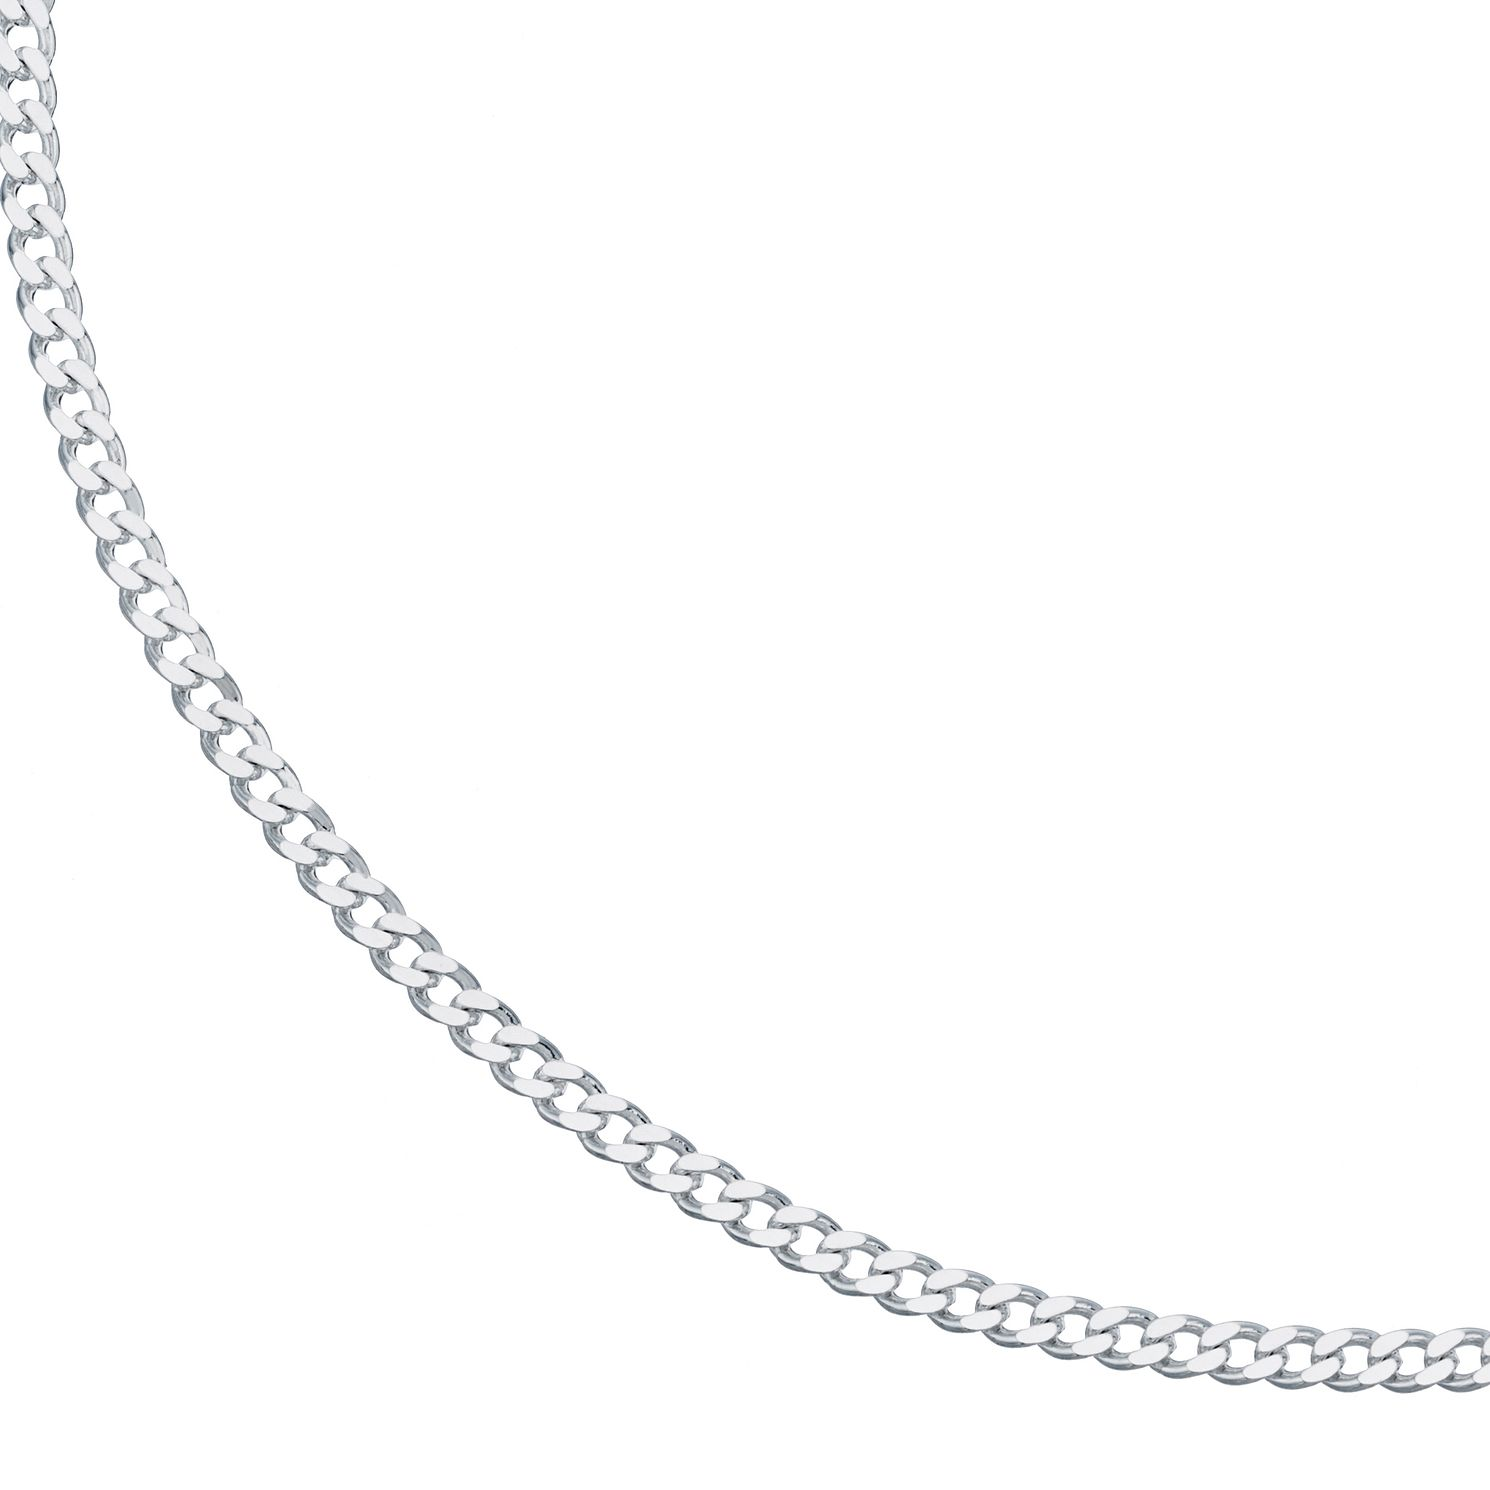 Sterling Silver 24 inches Curb Chain Necklace - Product number 3960250